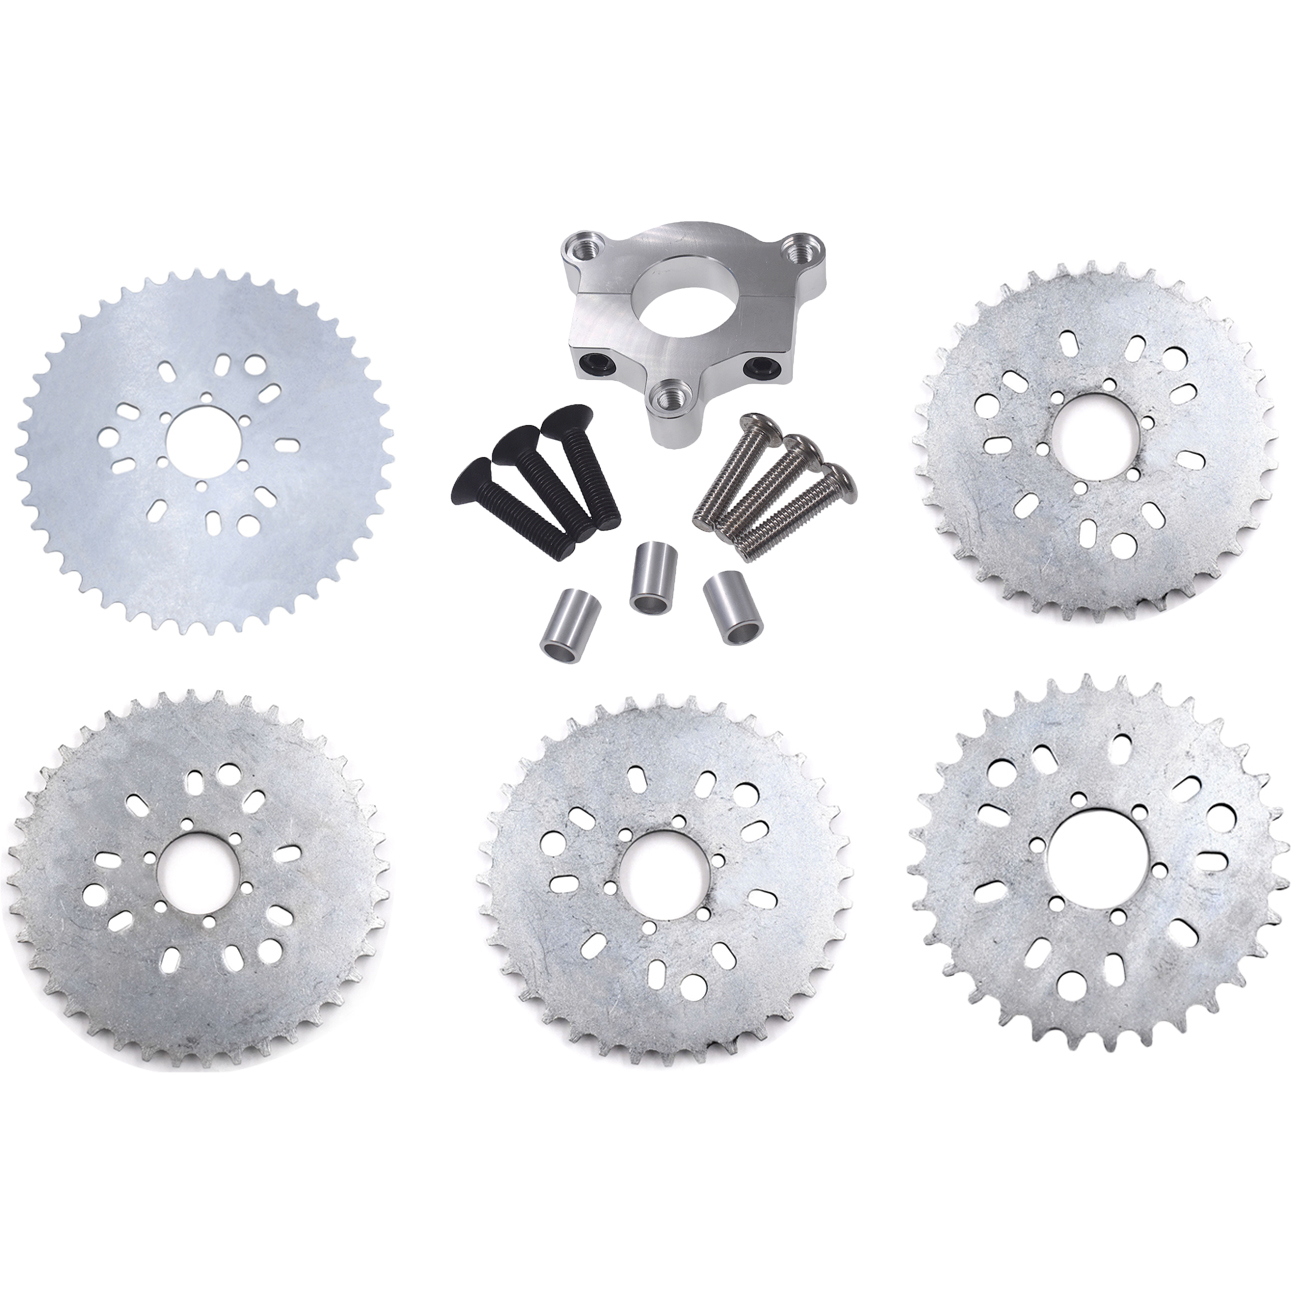 Pouvoir 32T 36T <font><b>38T</b></font> 40T 44T <font><b>Sprocket</b></font> Silver CNC Adaptor For 415 Chain Motorized Bike H/P Part image